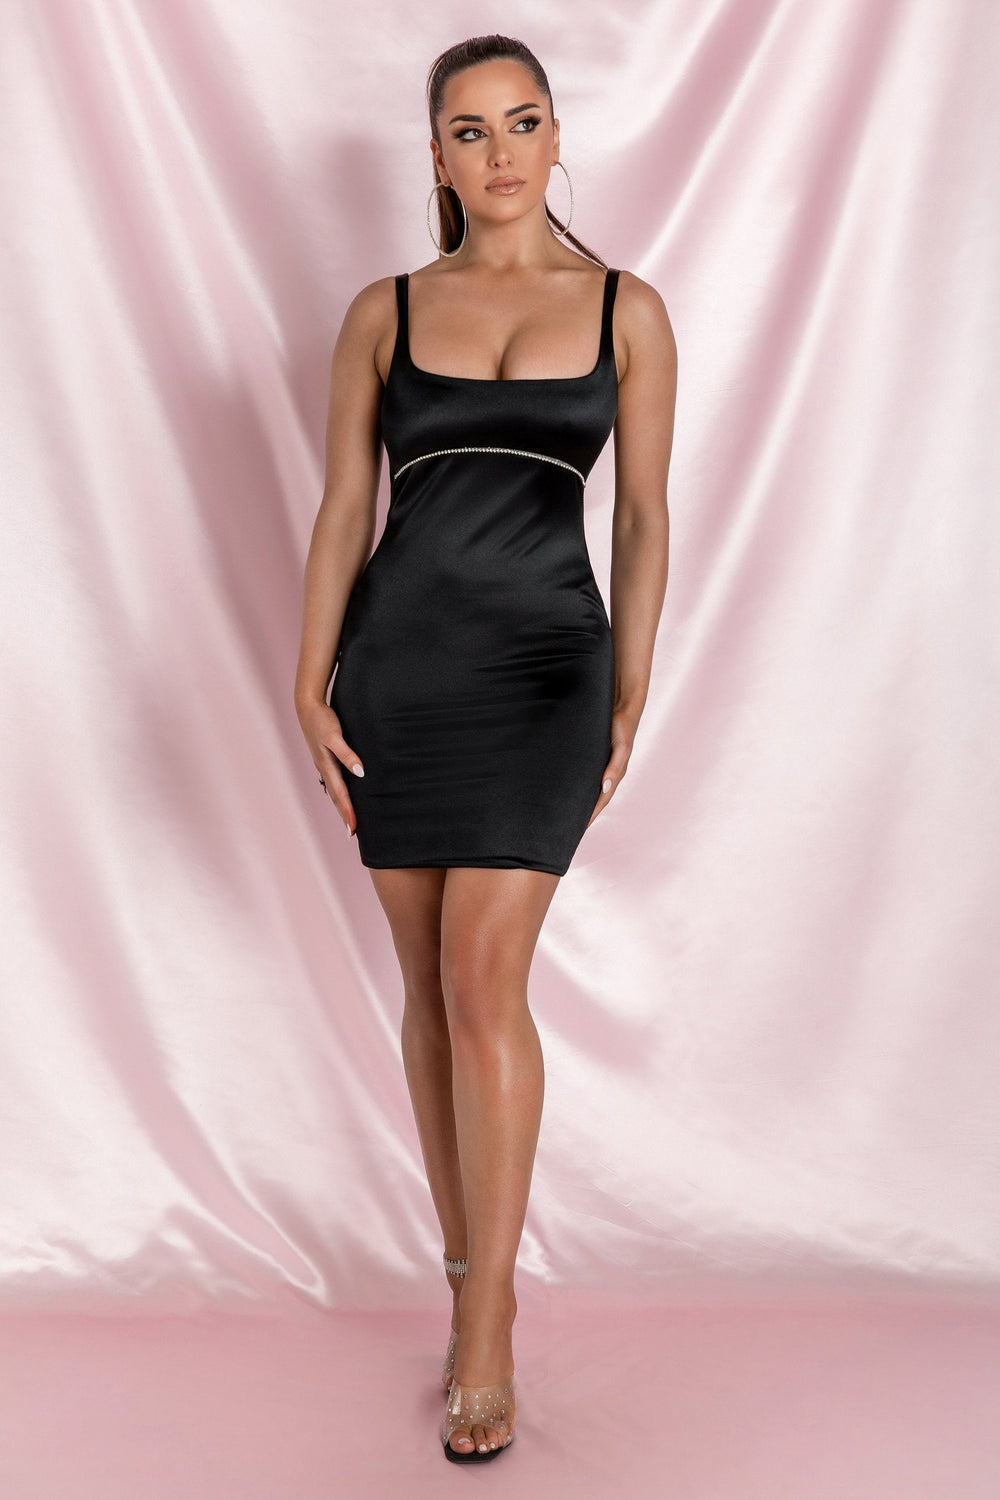 Mallory Diamante Underbust Trim Mini Dress - Black - MESHKI ?id=15849224568907